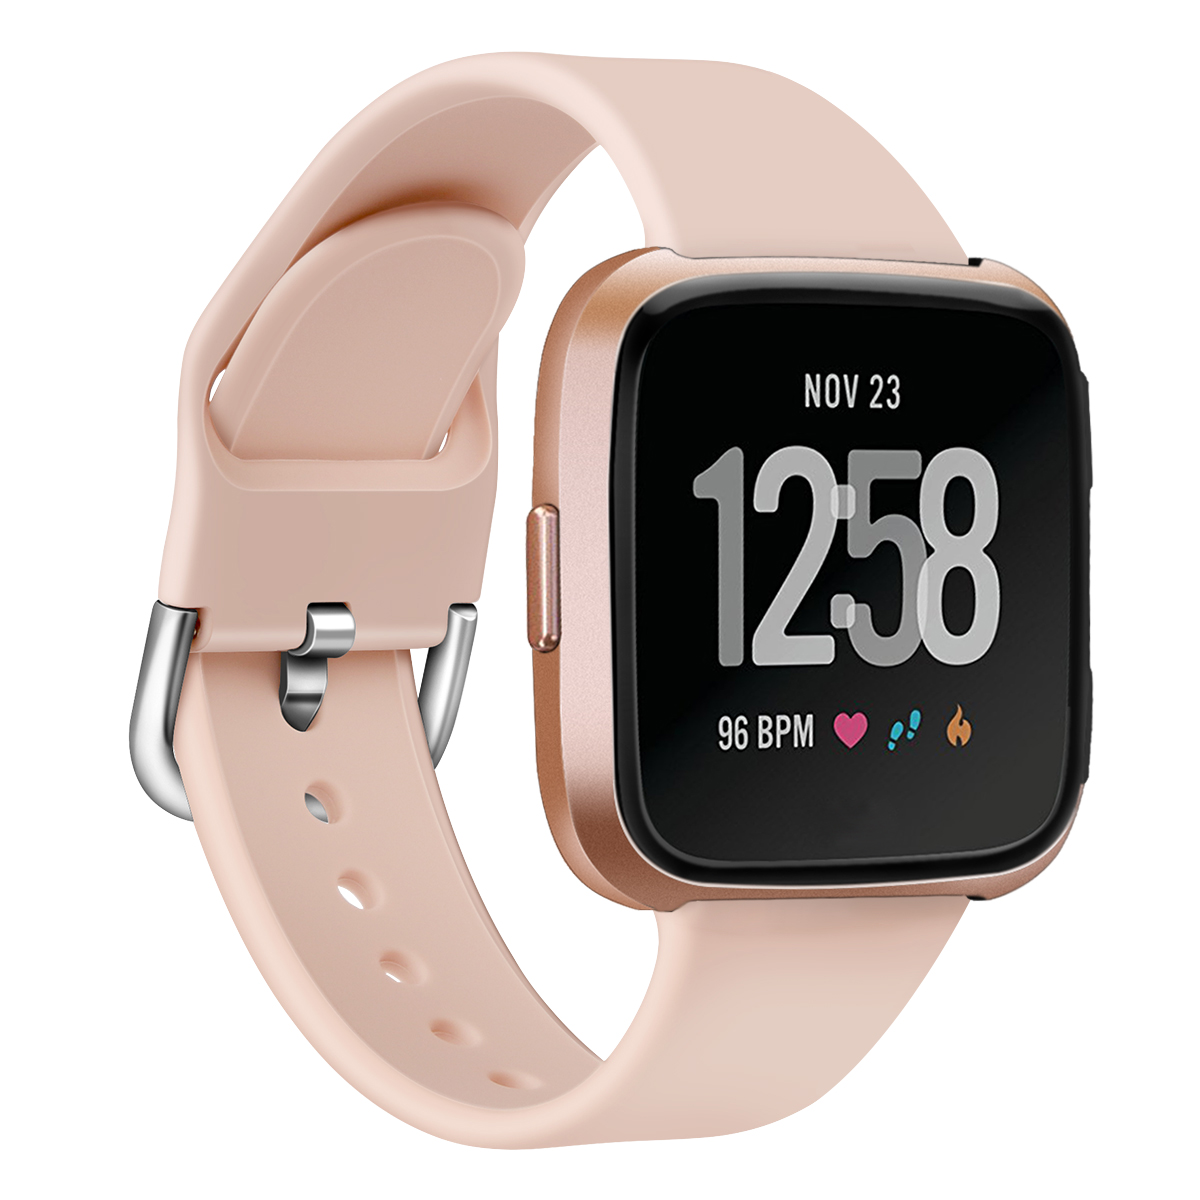 Replacement Fitbit Versa Band Strap Silicone Bracelet Breathable Replacement Sport Strap Bands For Fitbit Versa Watch 61017